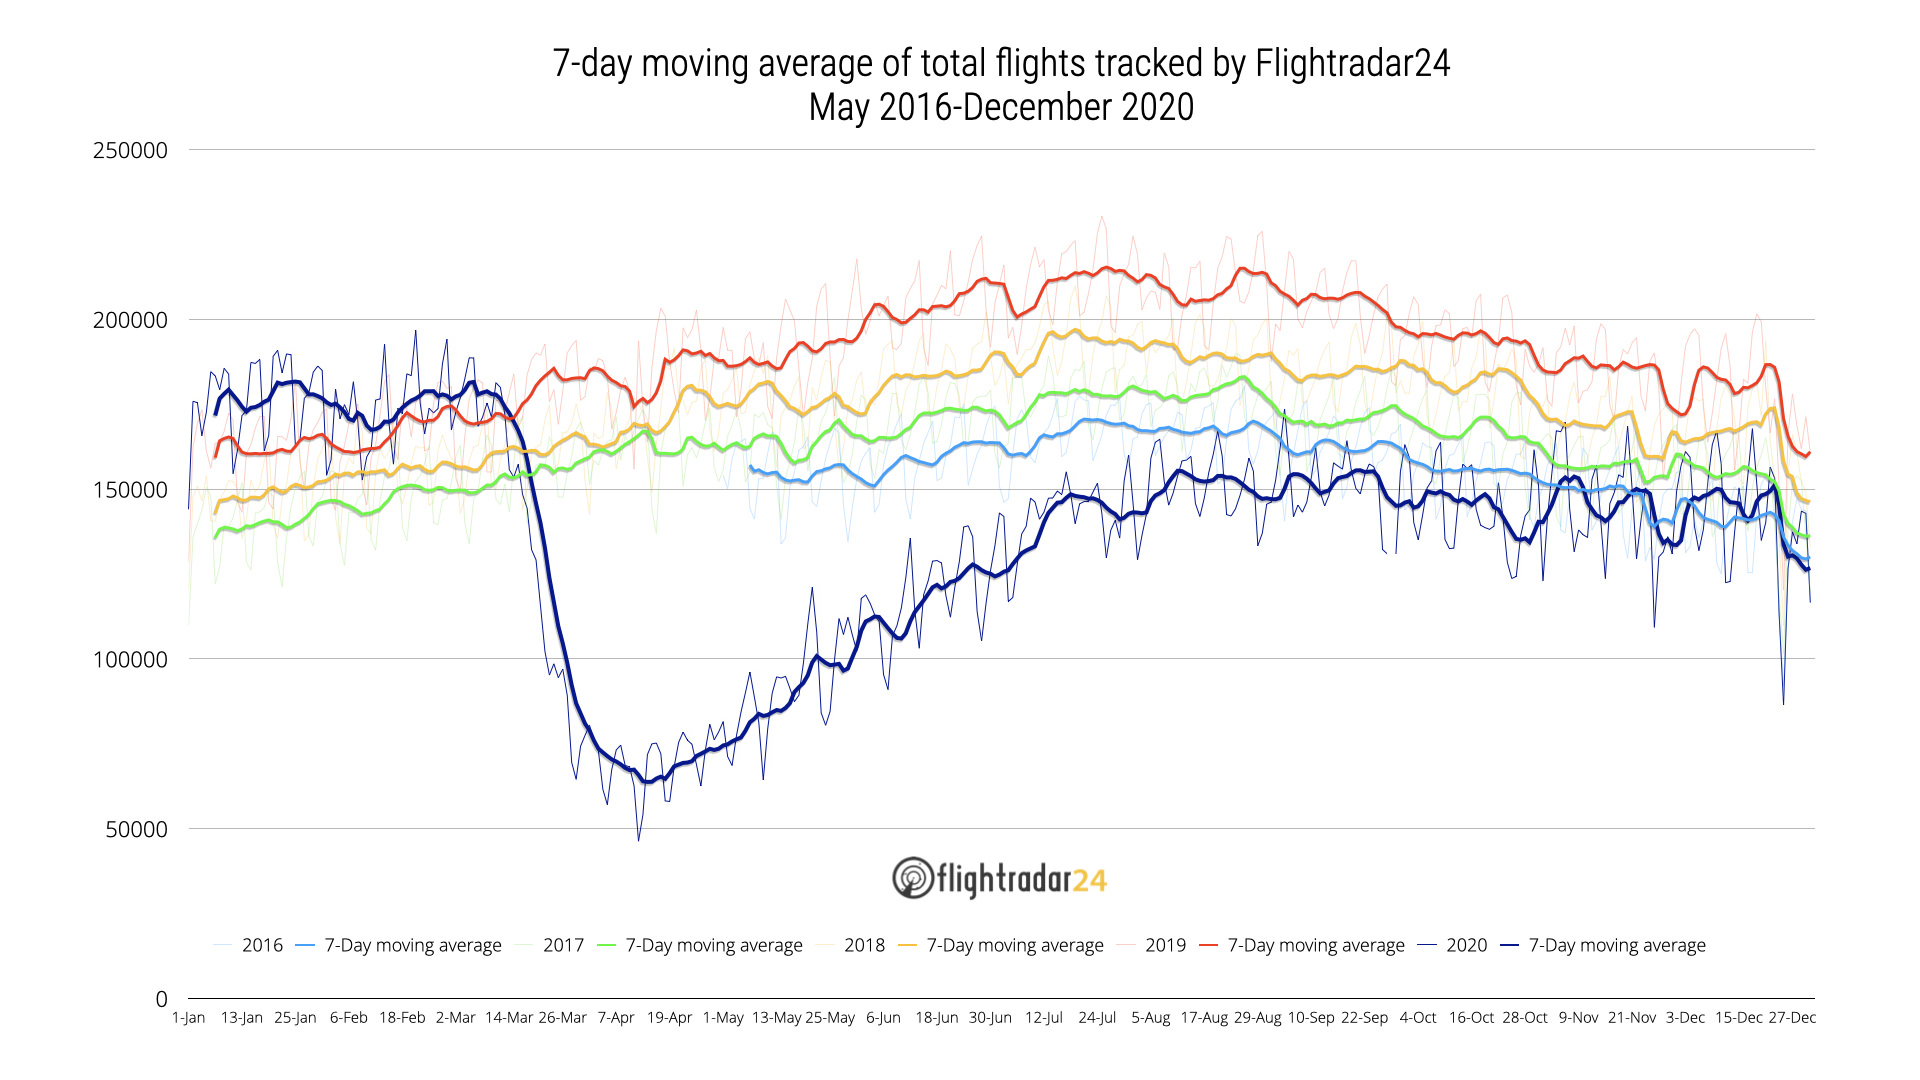 May 2016 to December 2020 Total Flights